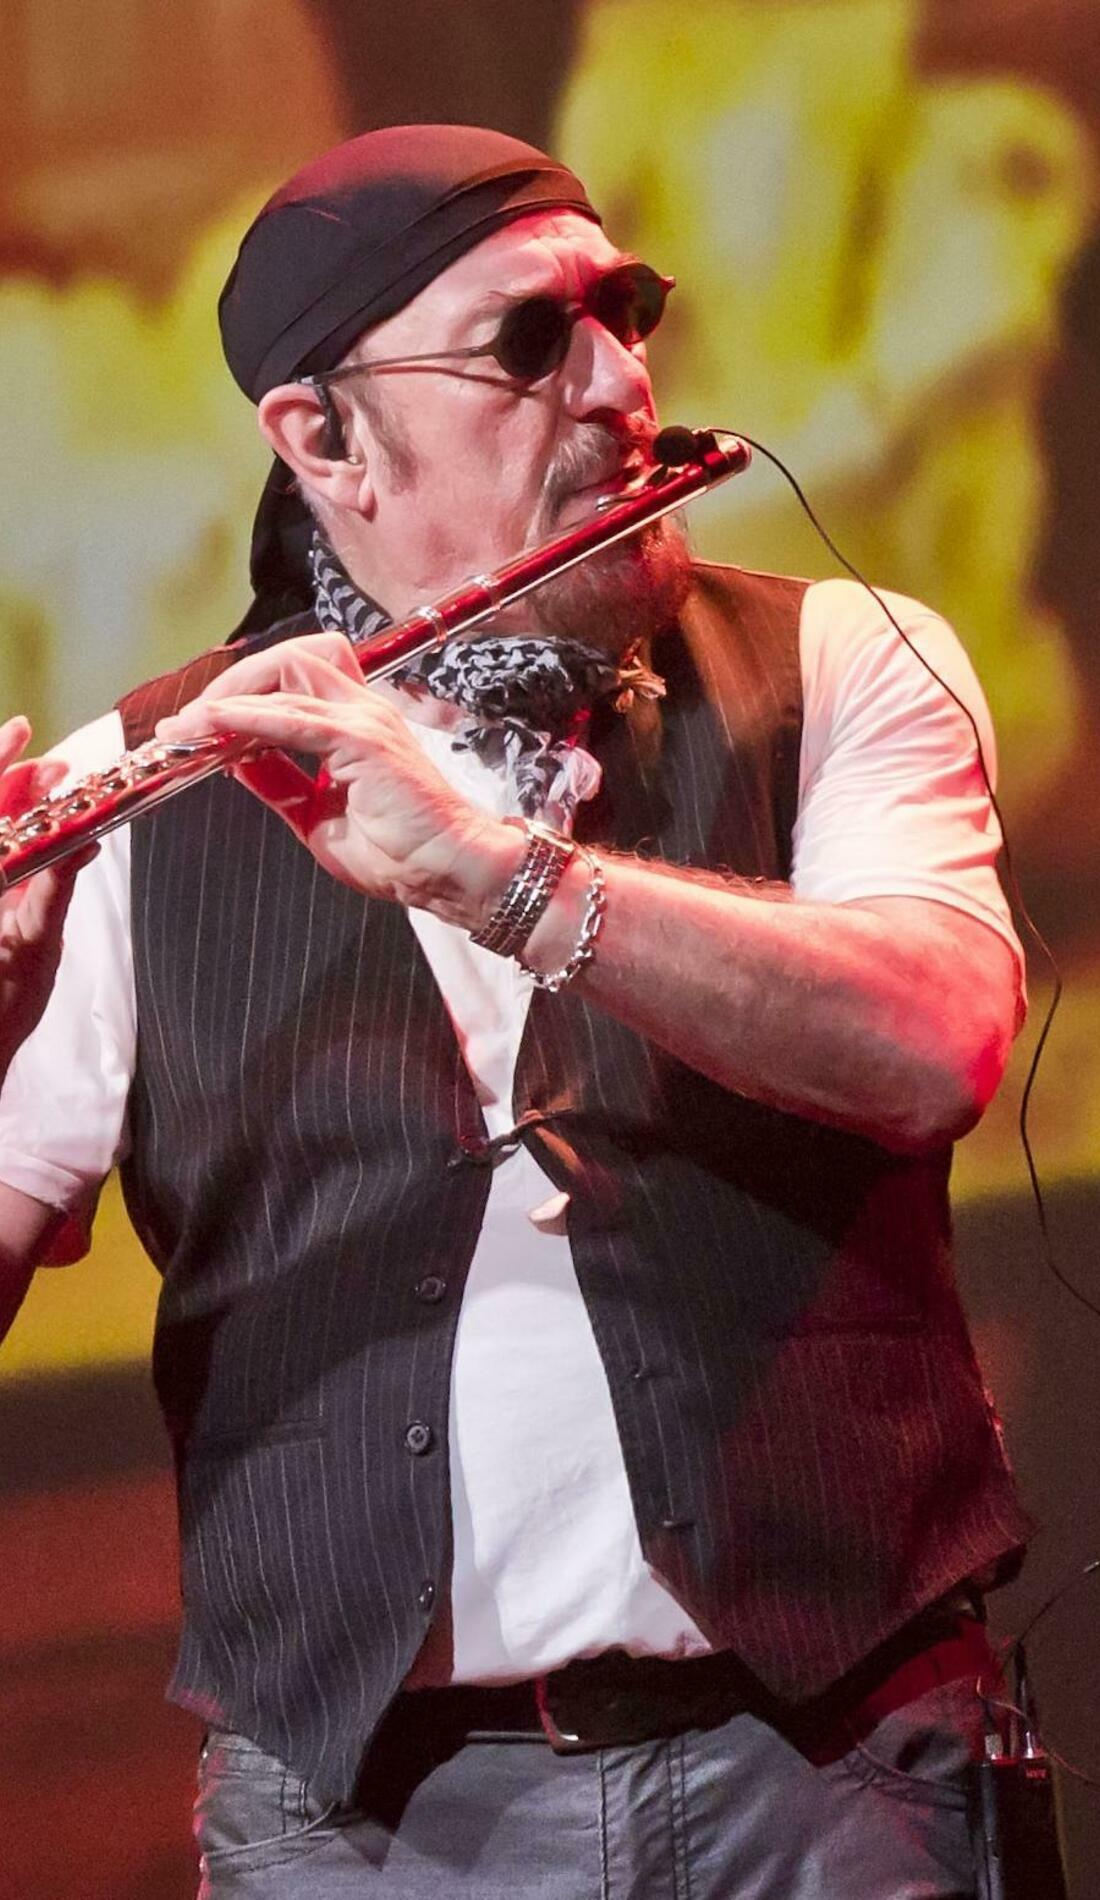 A Ian Anderson live event